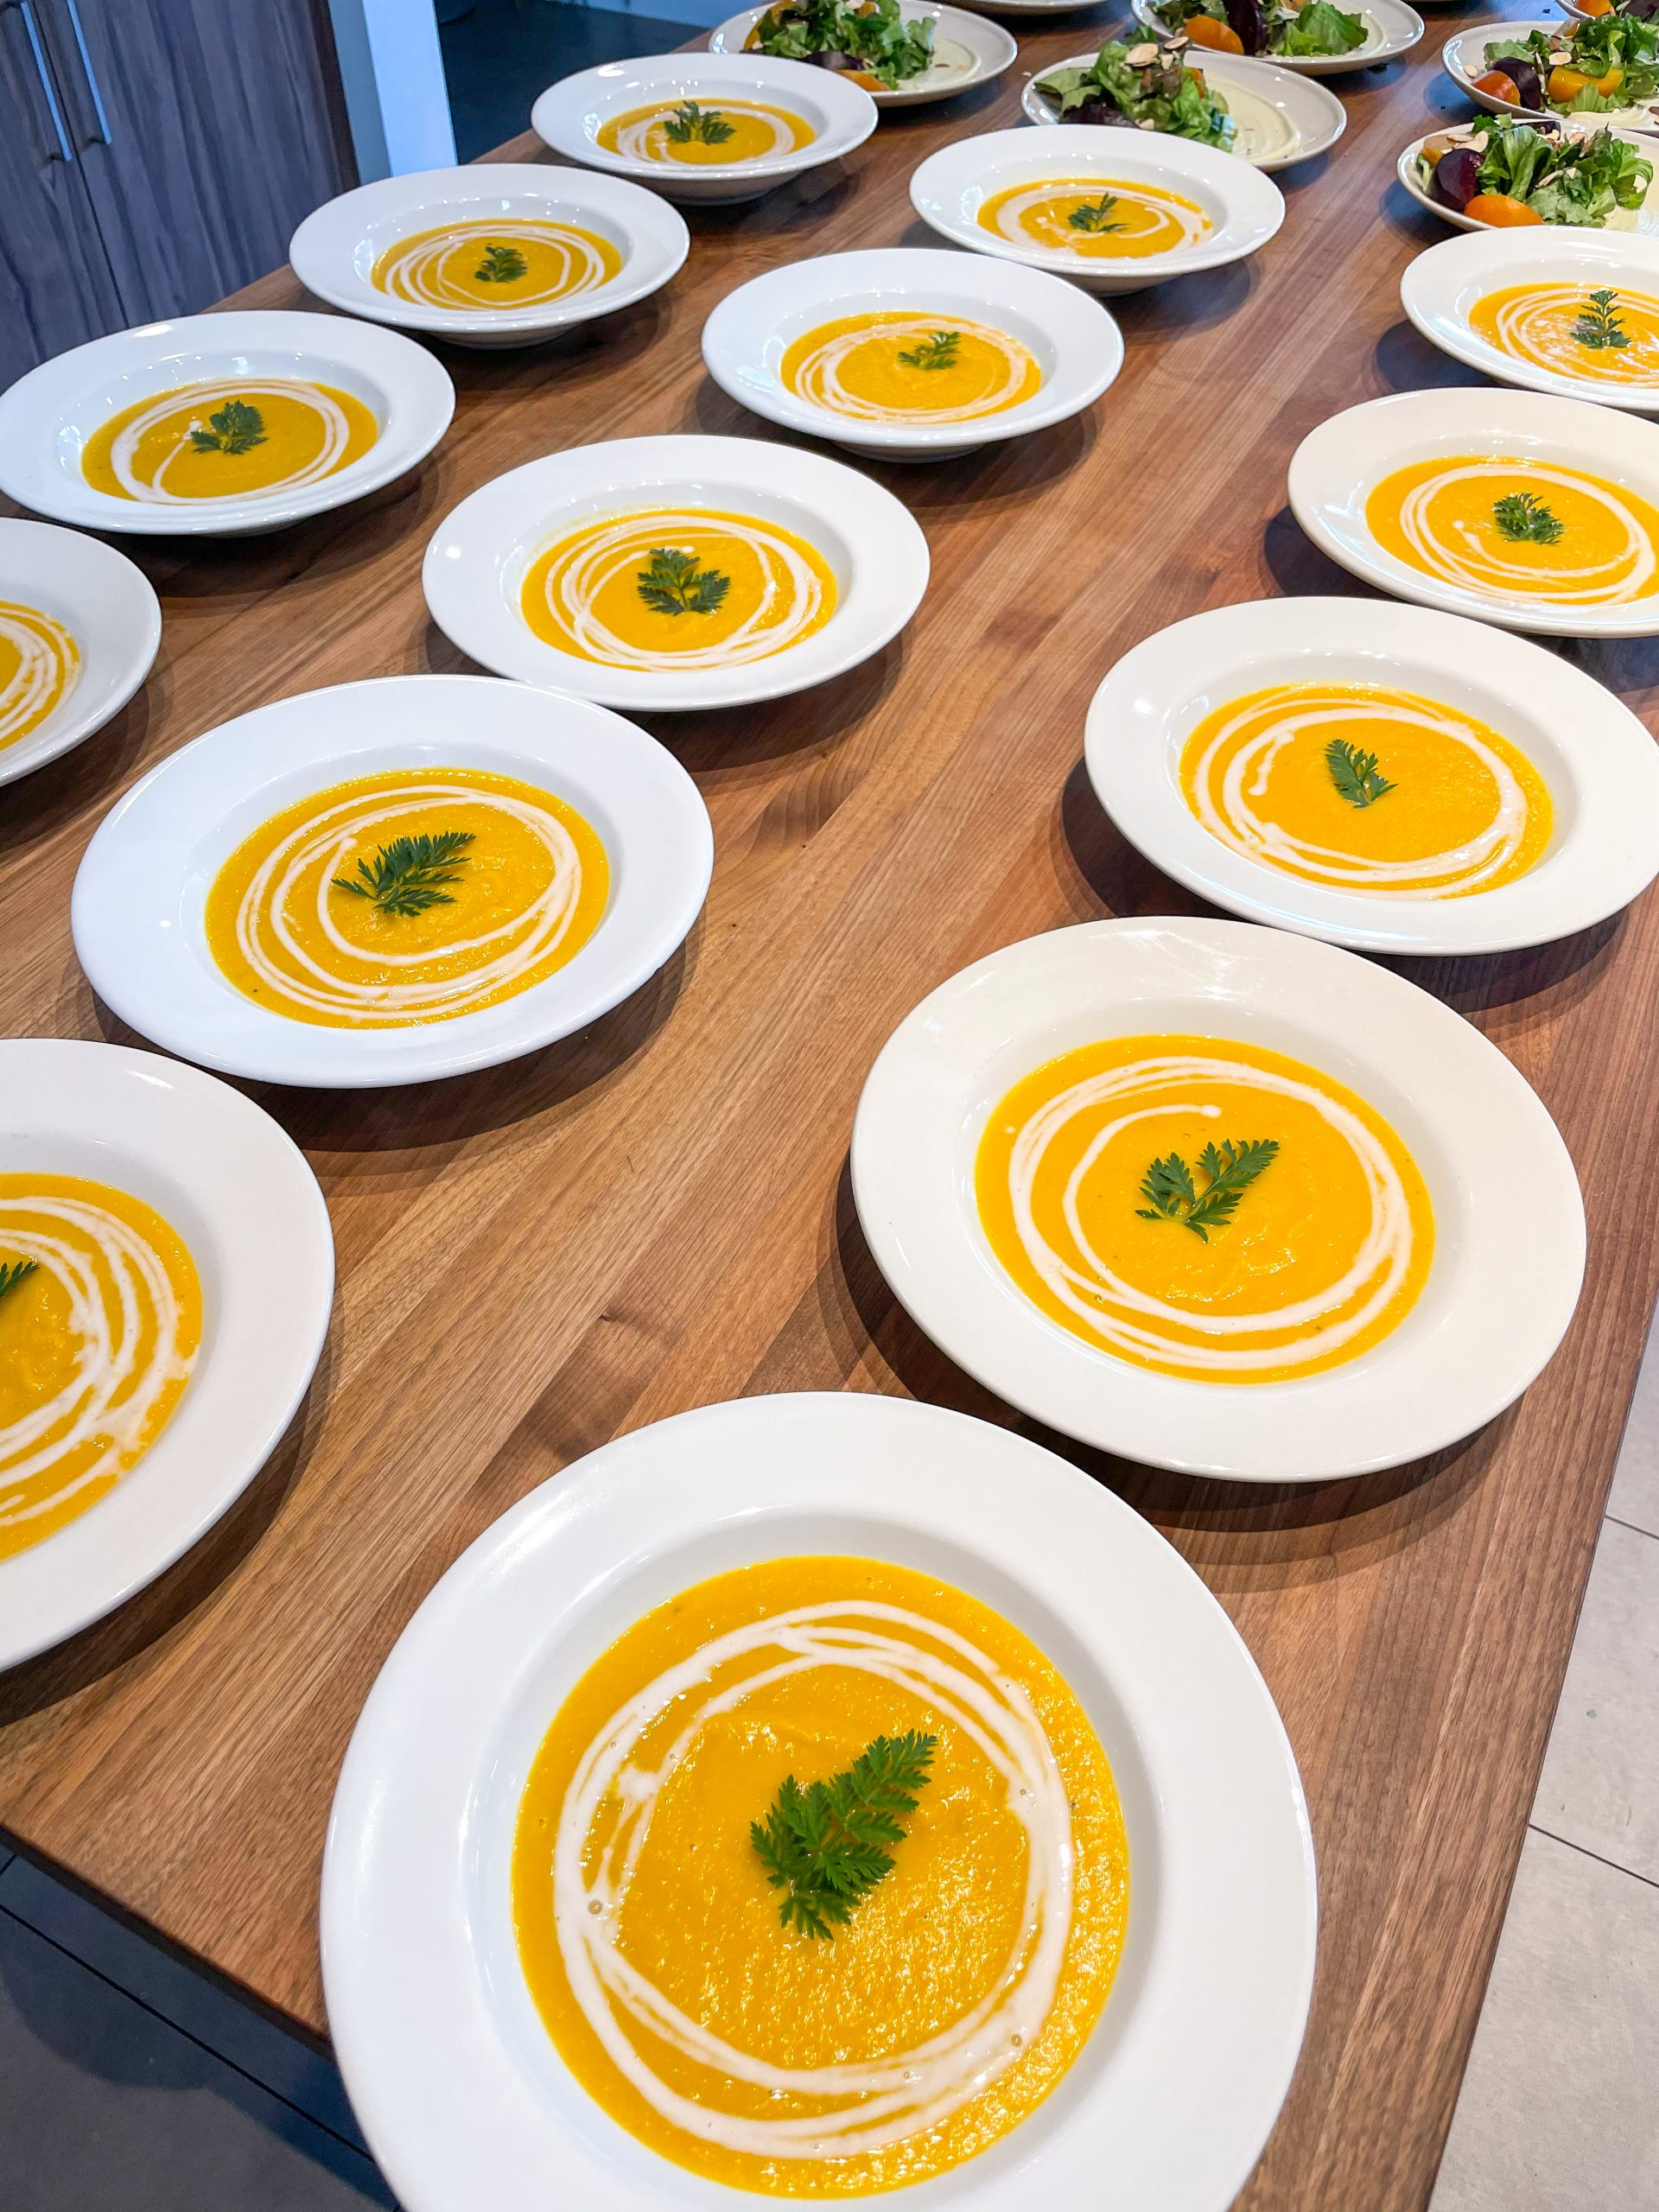 Roasted Yellow Carrot & Butternut Squash Soup - boutique catering